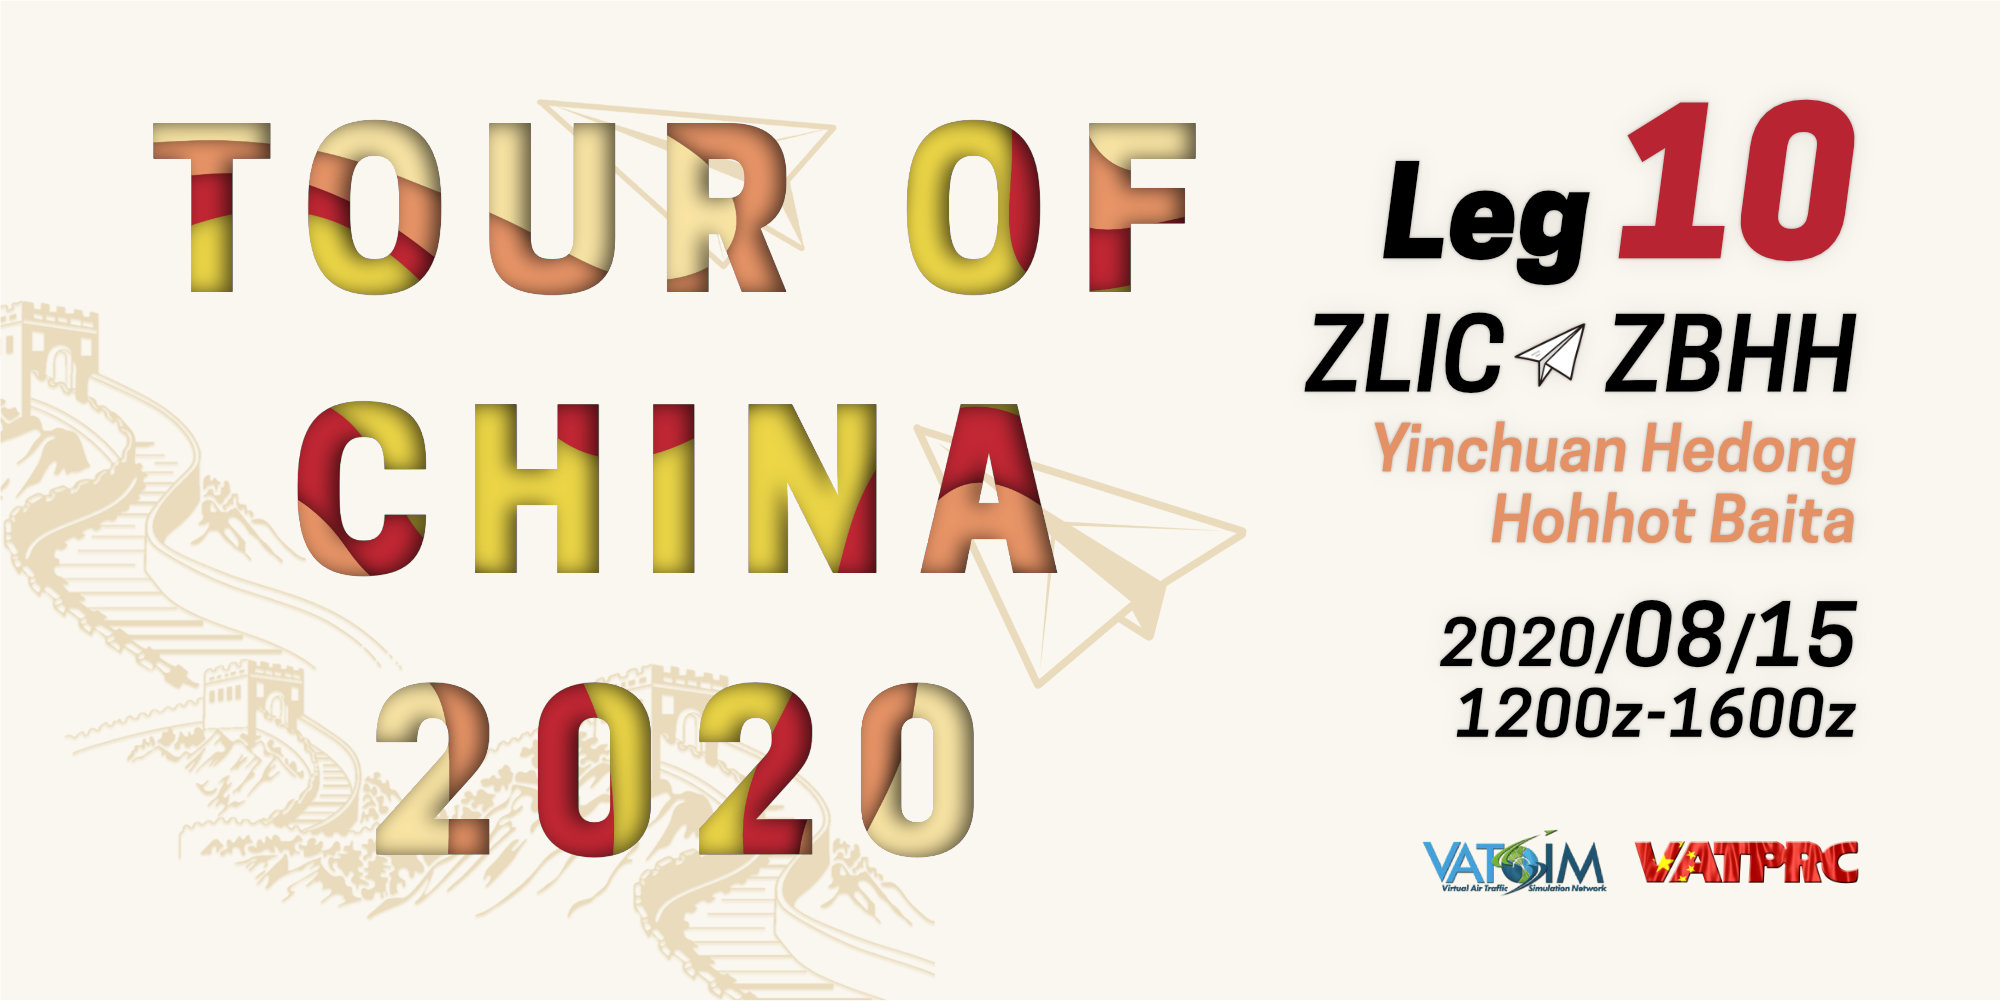 [2020-08-15] Tour Of China 2020 Leg 10 | Yinchuan – Hohhot